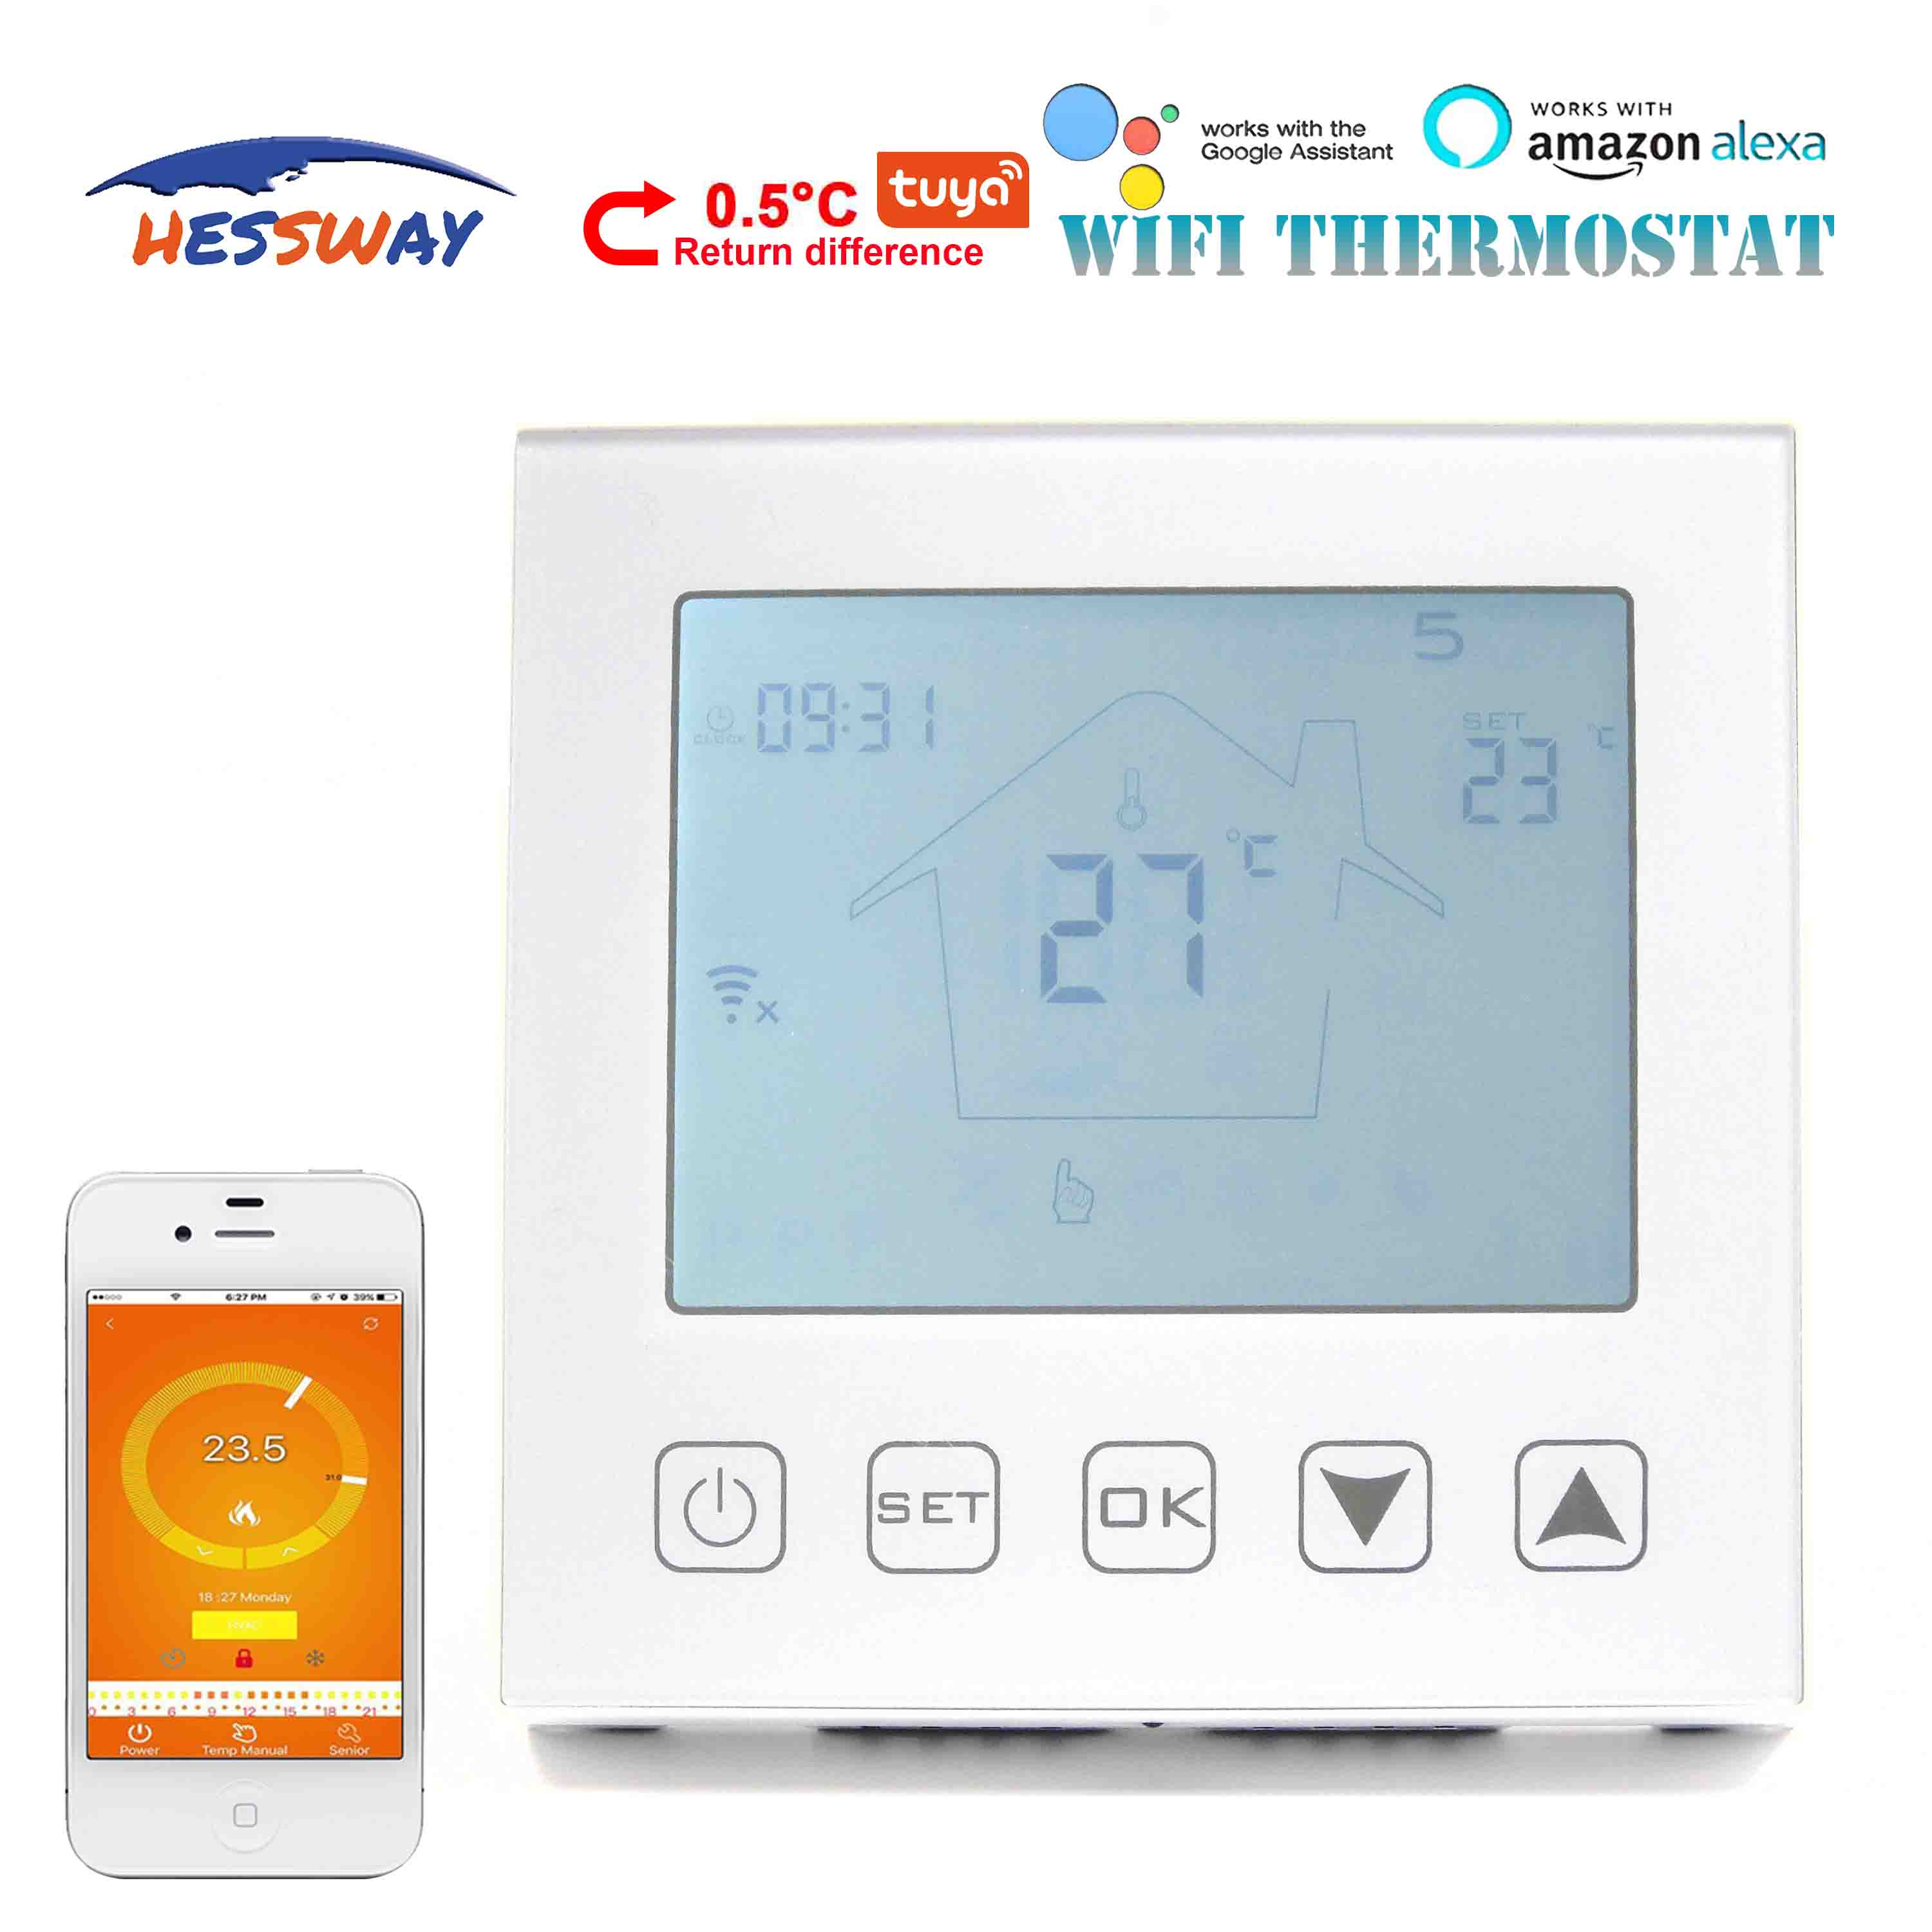 HESSWAY 3A TUYA Refrigerator Temperature Controller Wifi Thermostat For 2 In 1 Linkage Gas Boiler&Drycontact NC/NO